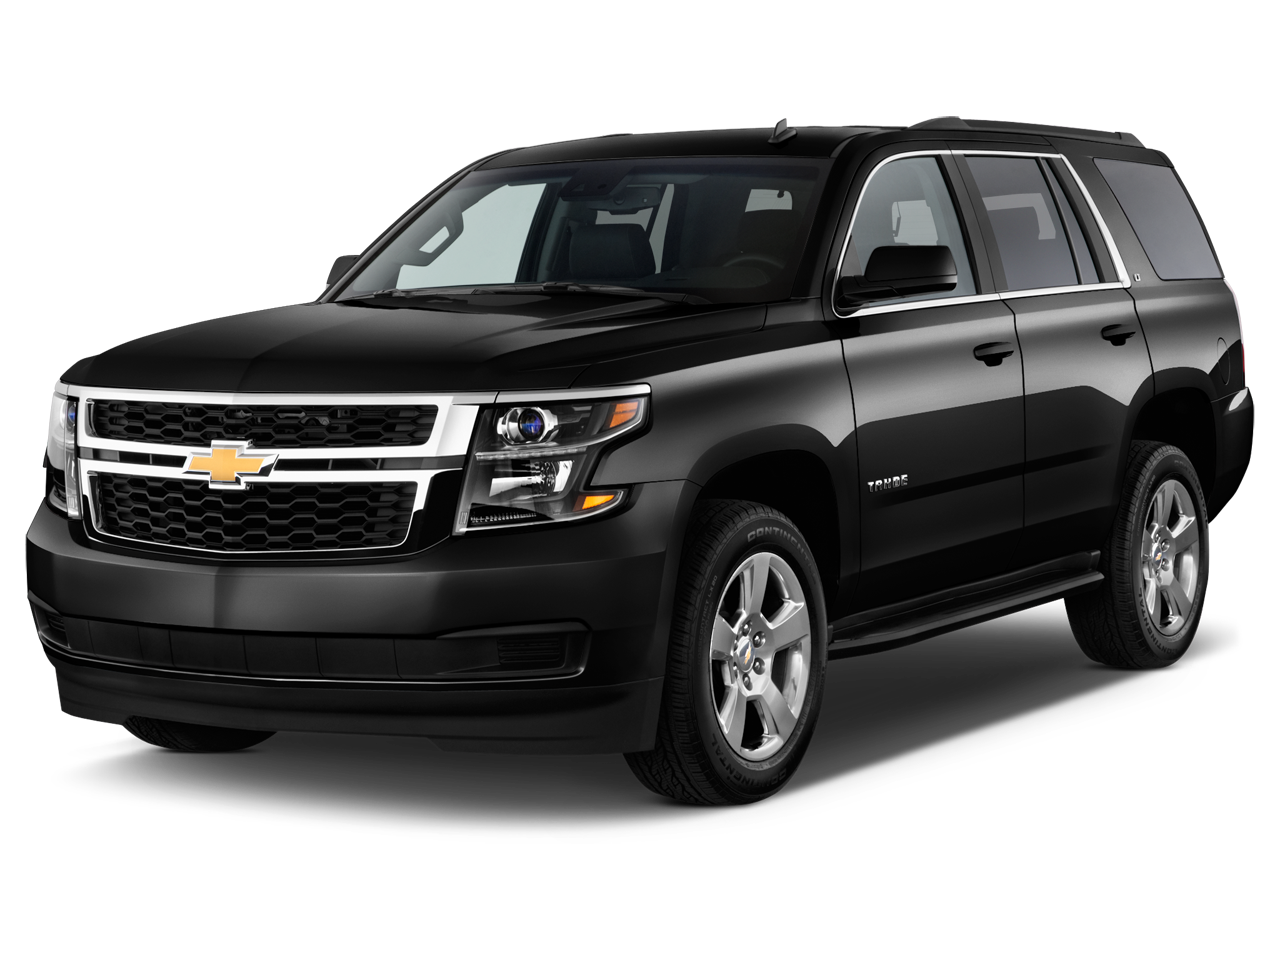 chevy suburban suv luxurious suv for transportation. Black Bedroom Furniture Sets. Home Design Ideas